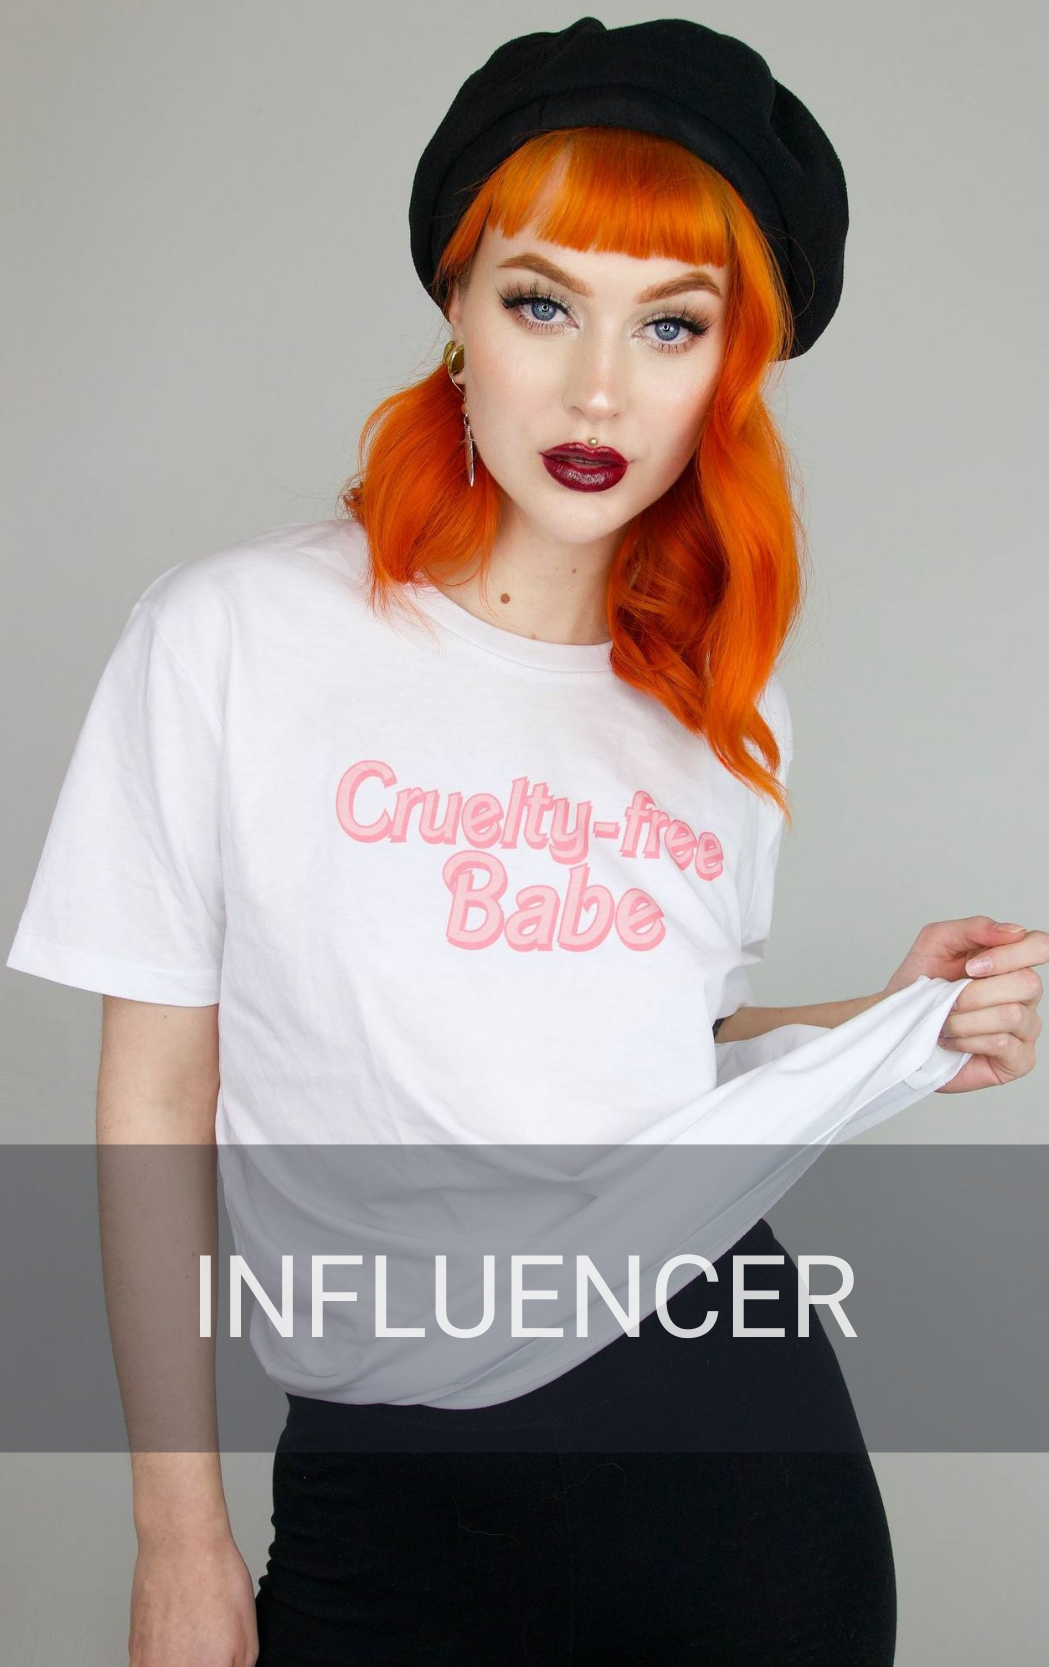 An influencer wearing her own branded clothing collection. She has red hair and is wearing a white t-shirt facing a camera.